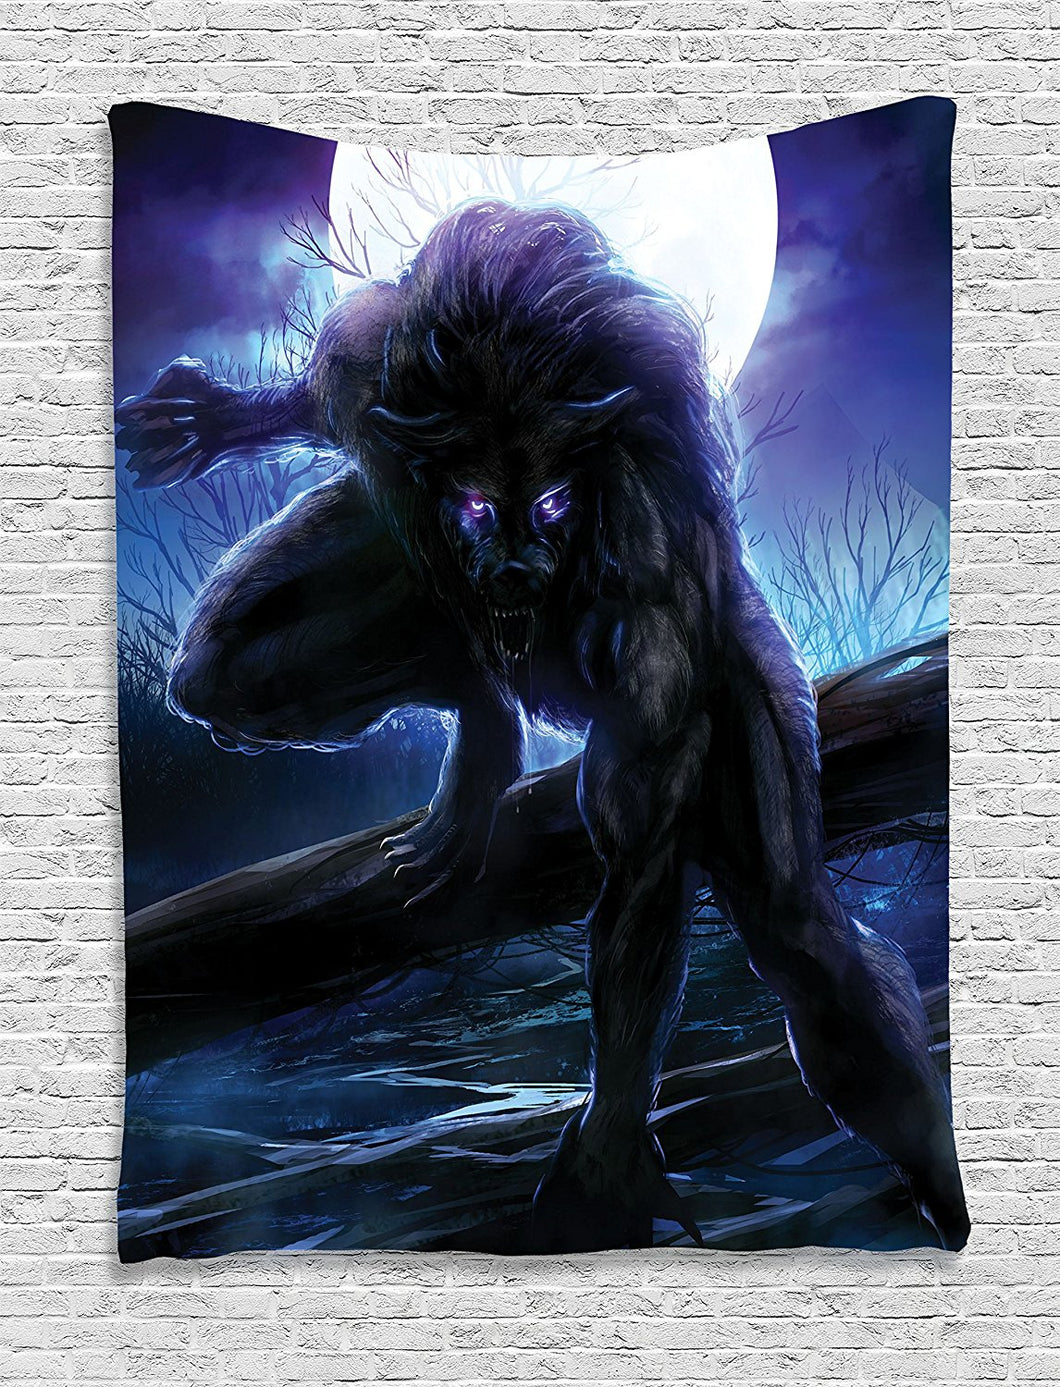 Fantasy World Decor Tapestry, Surreal Werewolf with Electric Eyes in Full Moon Transformation Folkloric Decor, Wall Hanging for Bedroom Living Room Dorm, 60 W x 80 L Inches, Purple Blue